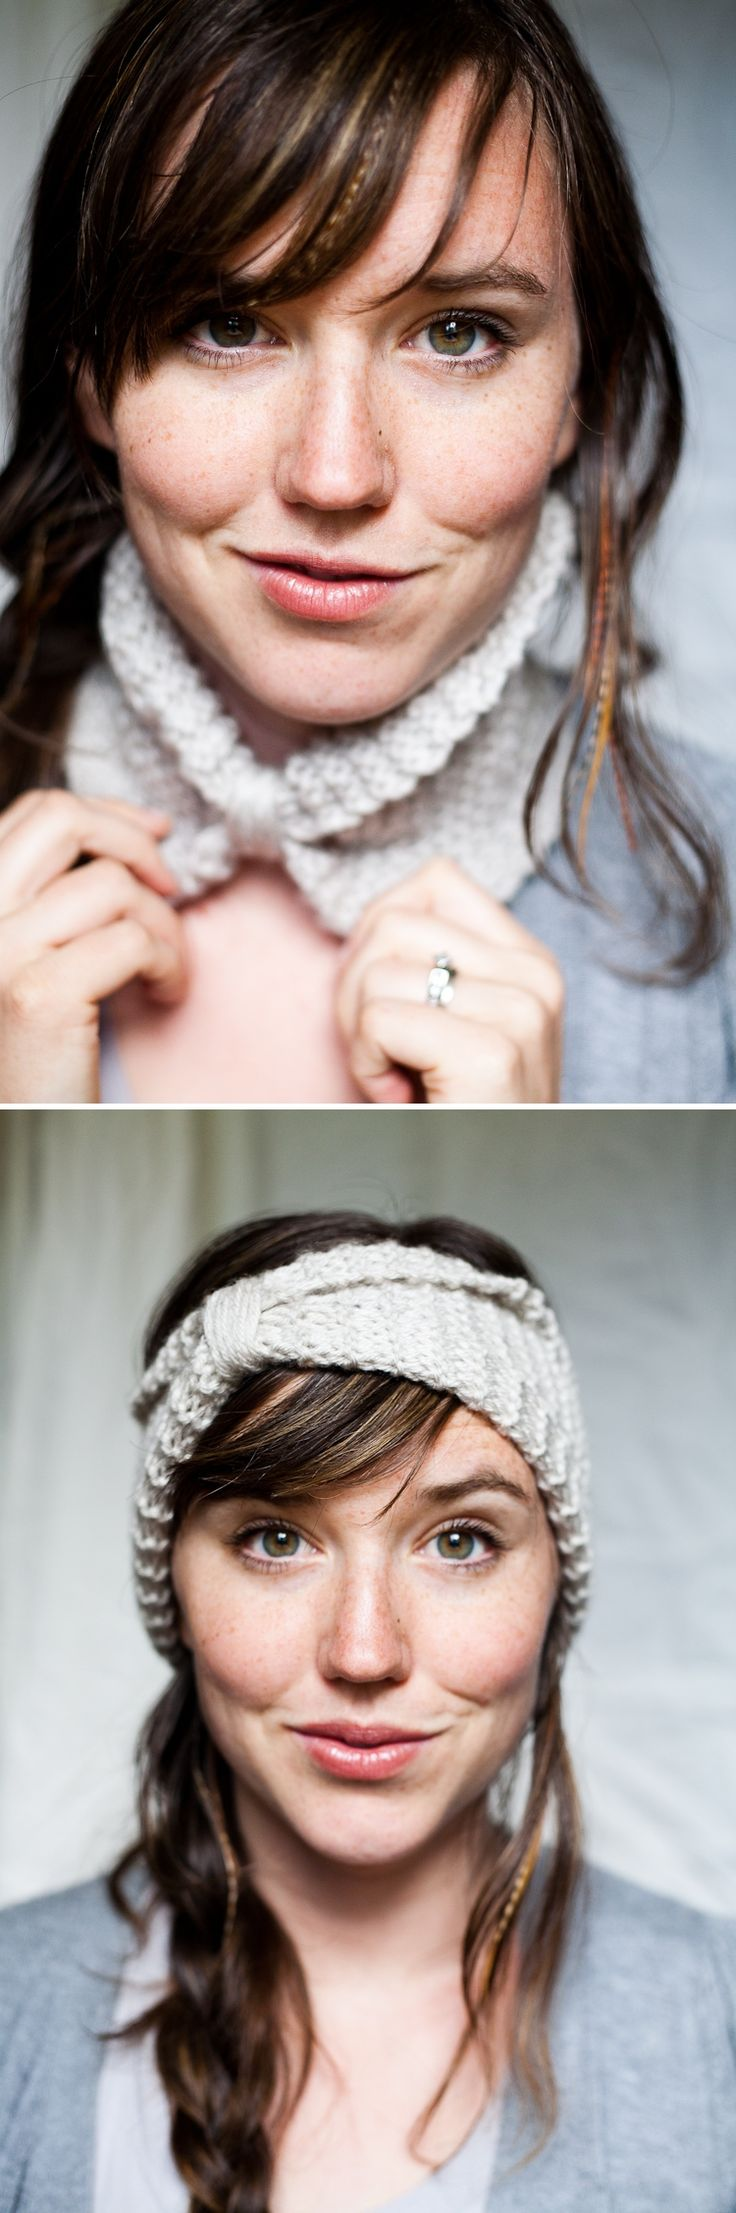 DIY: knitted cowl / headband. Yay, I have attempted this and will giving it away as a gift. Also made one for myself as I liked it so much, and it was easy to make, didn't take much time to do at all. 31.12.11